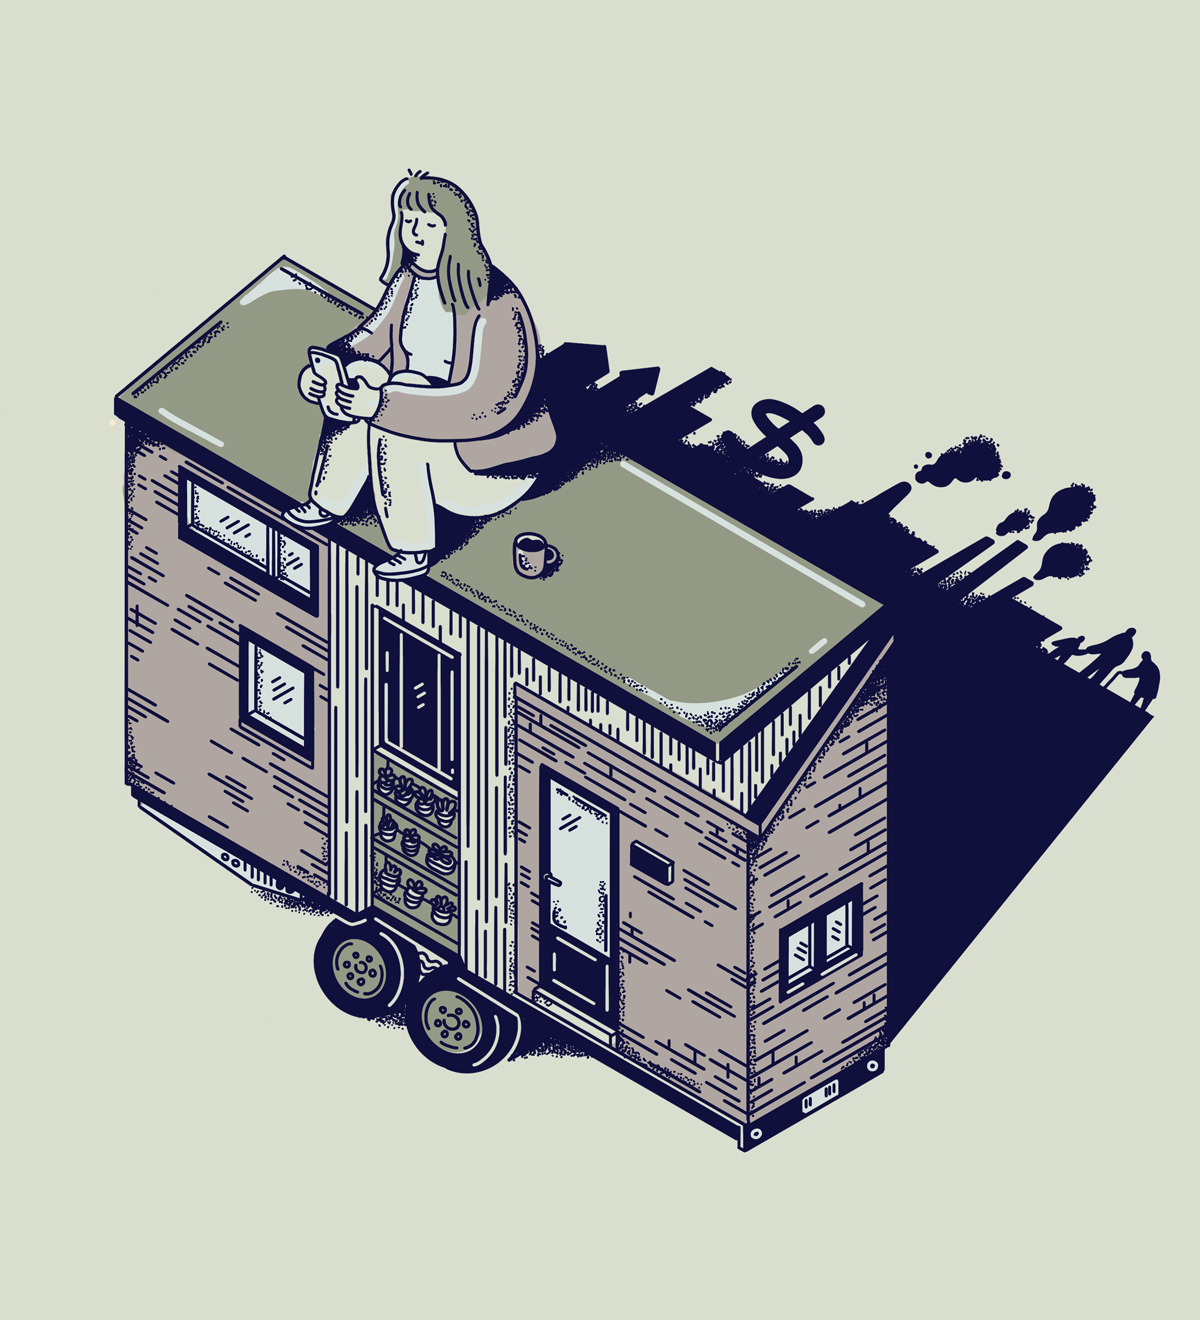 Tiny Homes Won't Fix the Housing Crisis